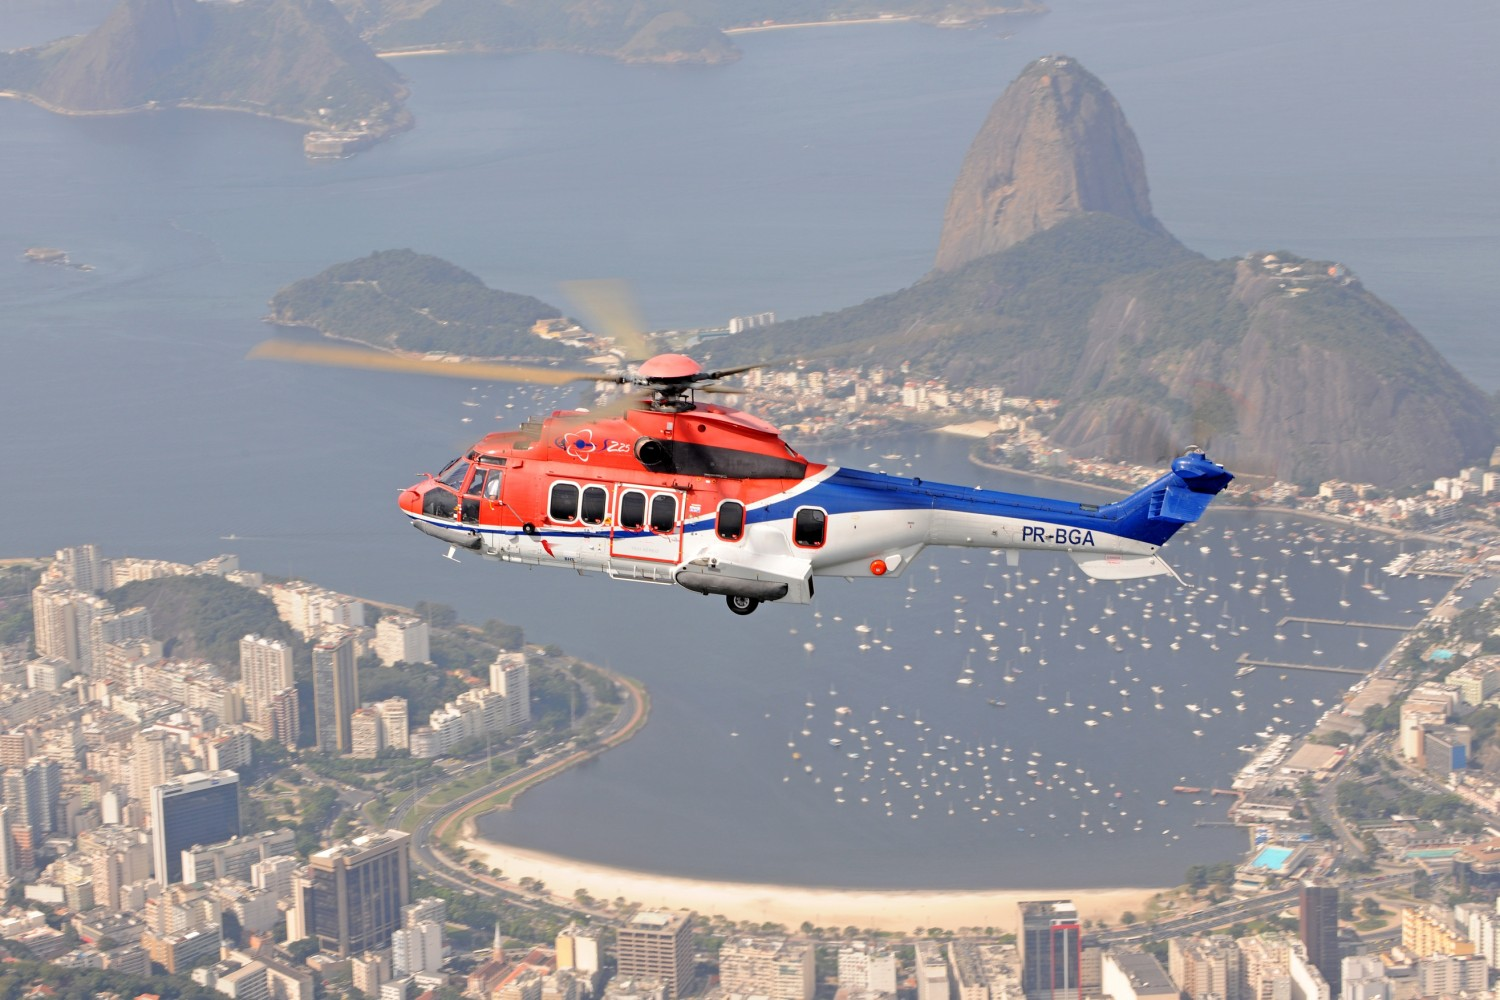 H225 Airbus Helicopters